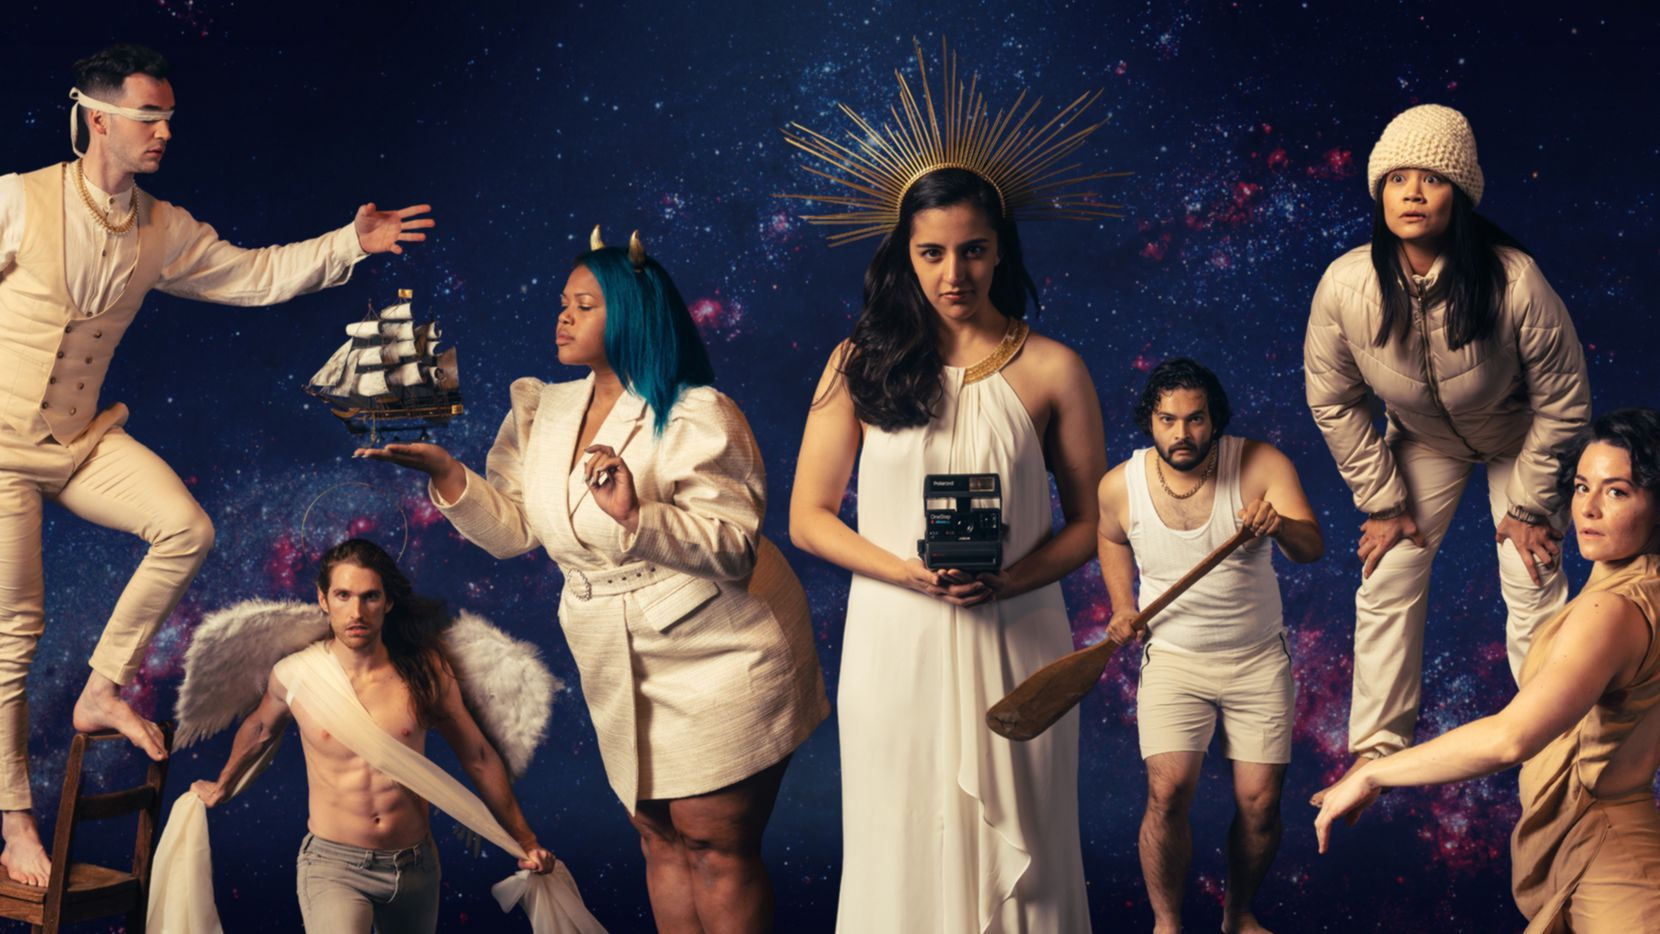 """From left, Mitchell Stephens, Garret Storms, Victoria A. Cruz, Shyama Nithiananda, Galen Sho Sato, Olivia de Guzman and Kelsey Milbourn play explorers of the nexus between joy and terror in Moonrise Initiative's production of """"In Search of the Sublime,"""" being presented live over Zoom by Fort Worth's Stage West Theatre through March 21."""